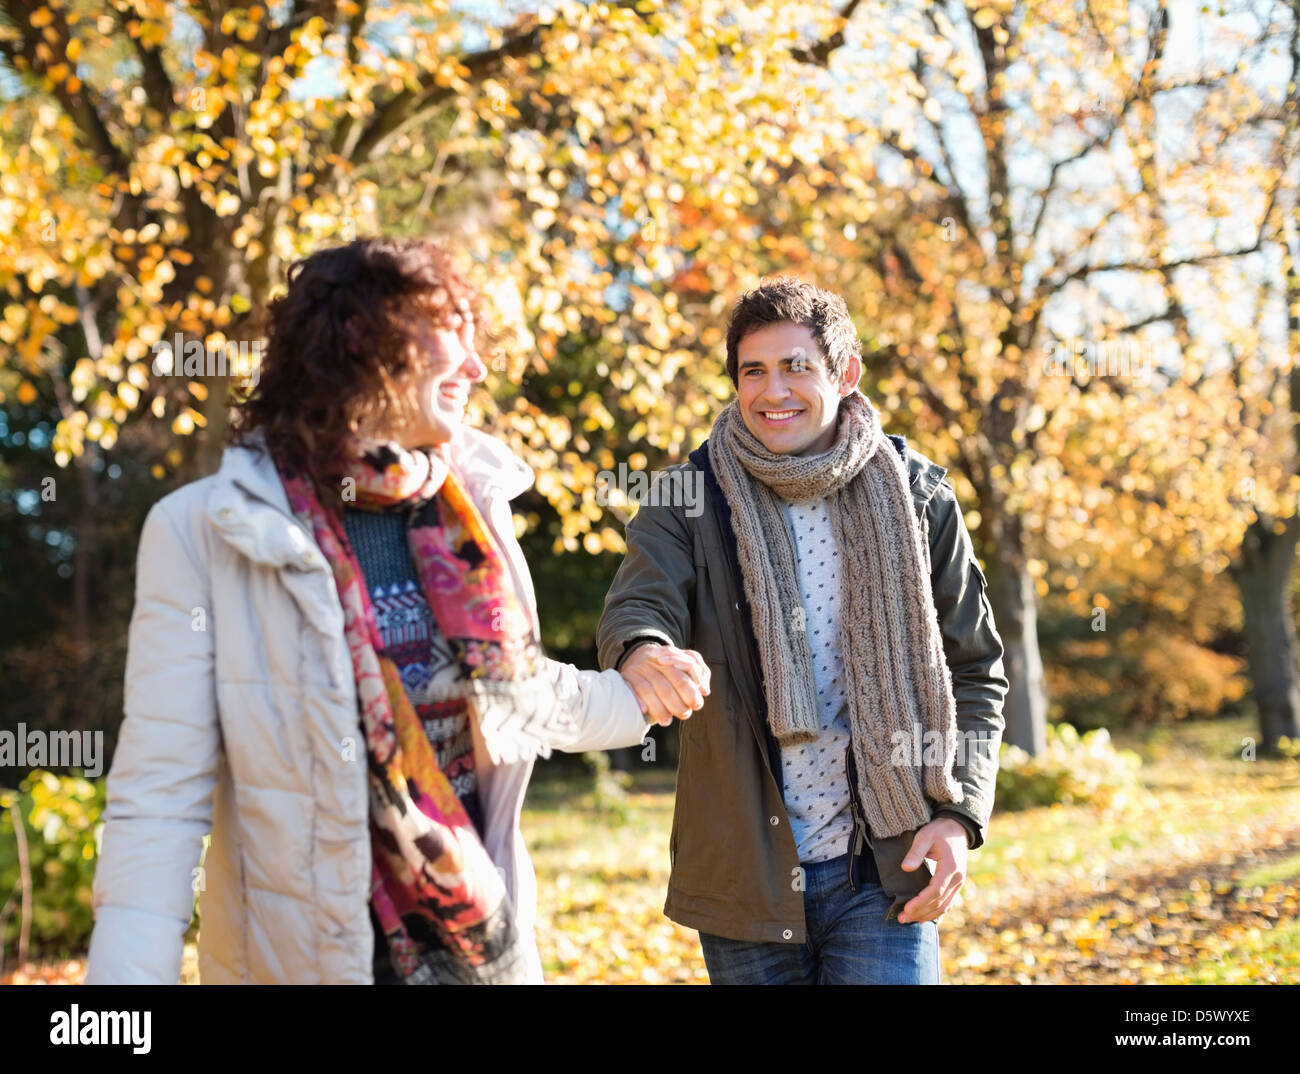 Couple holding hands in park Photo Stock